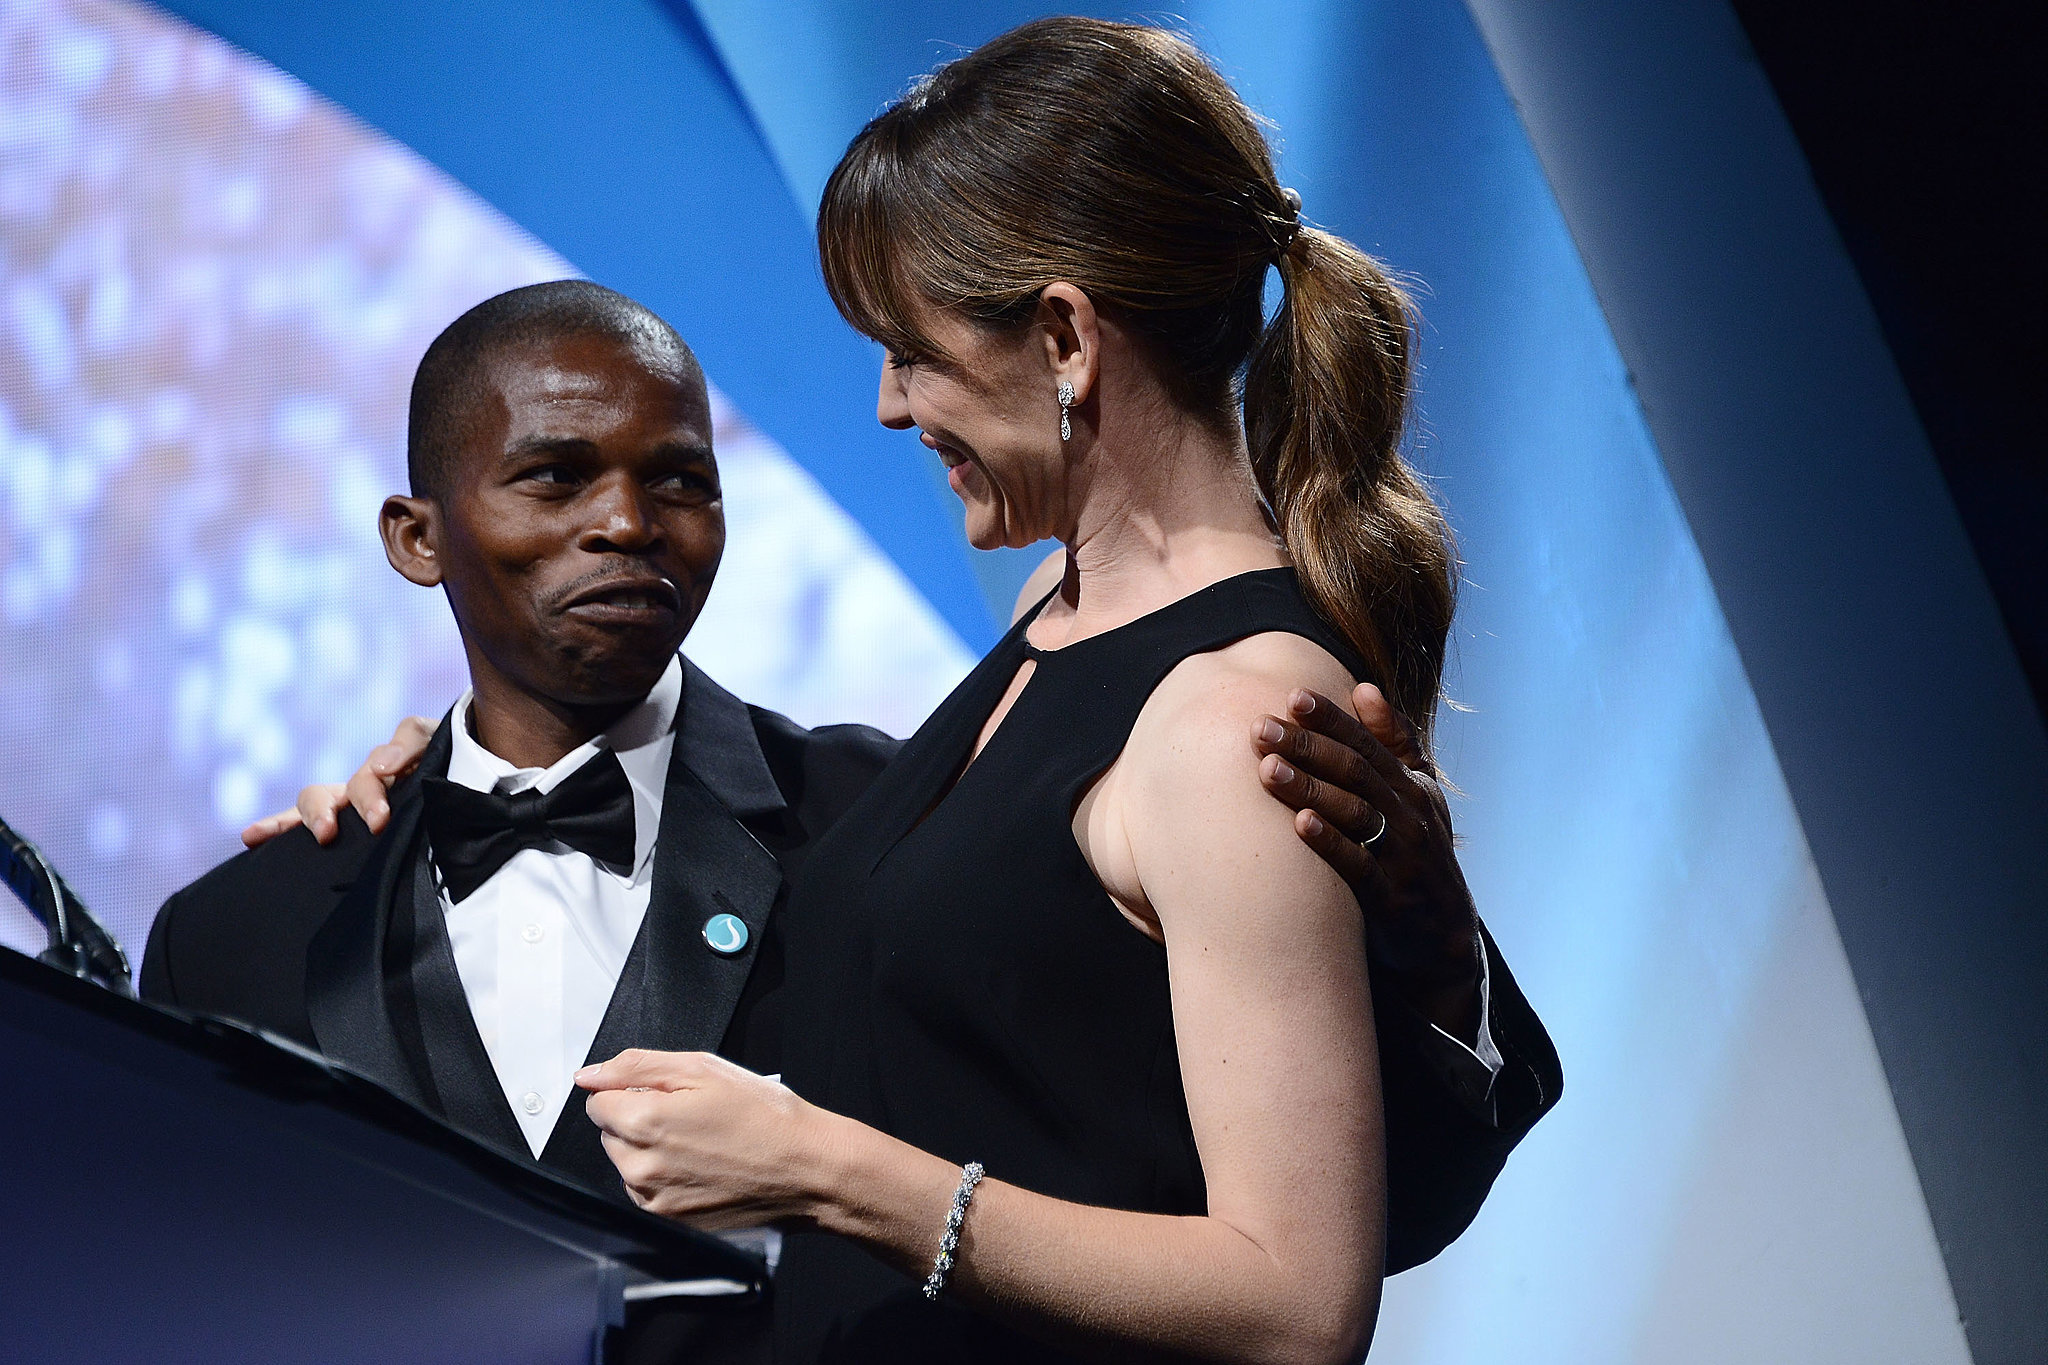 She hit the stage with Sibusiso Shiba, a man from Swaziland who talked about how the Thirst Project helped his community.